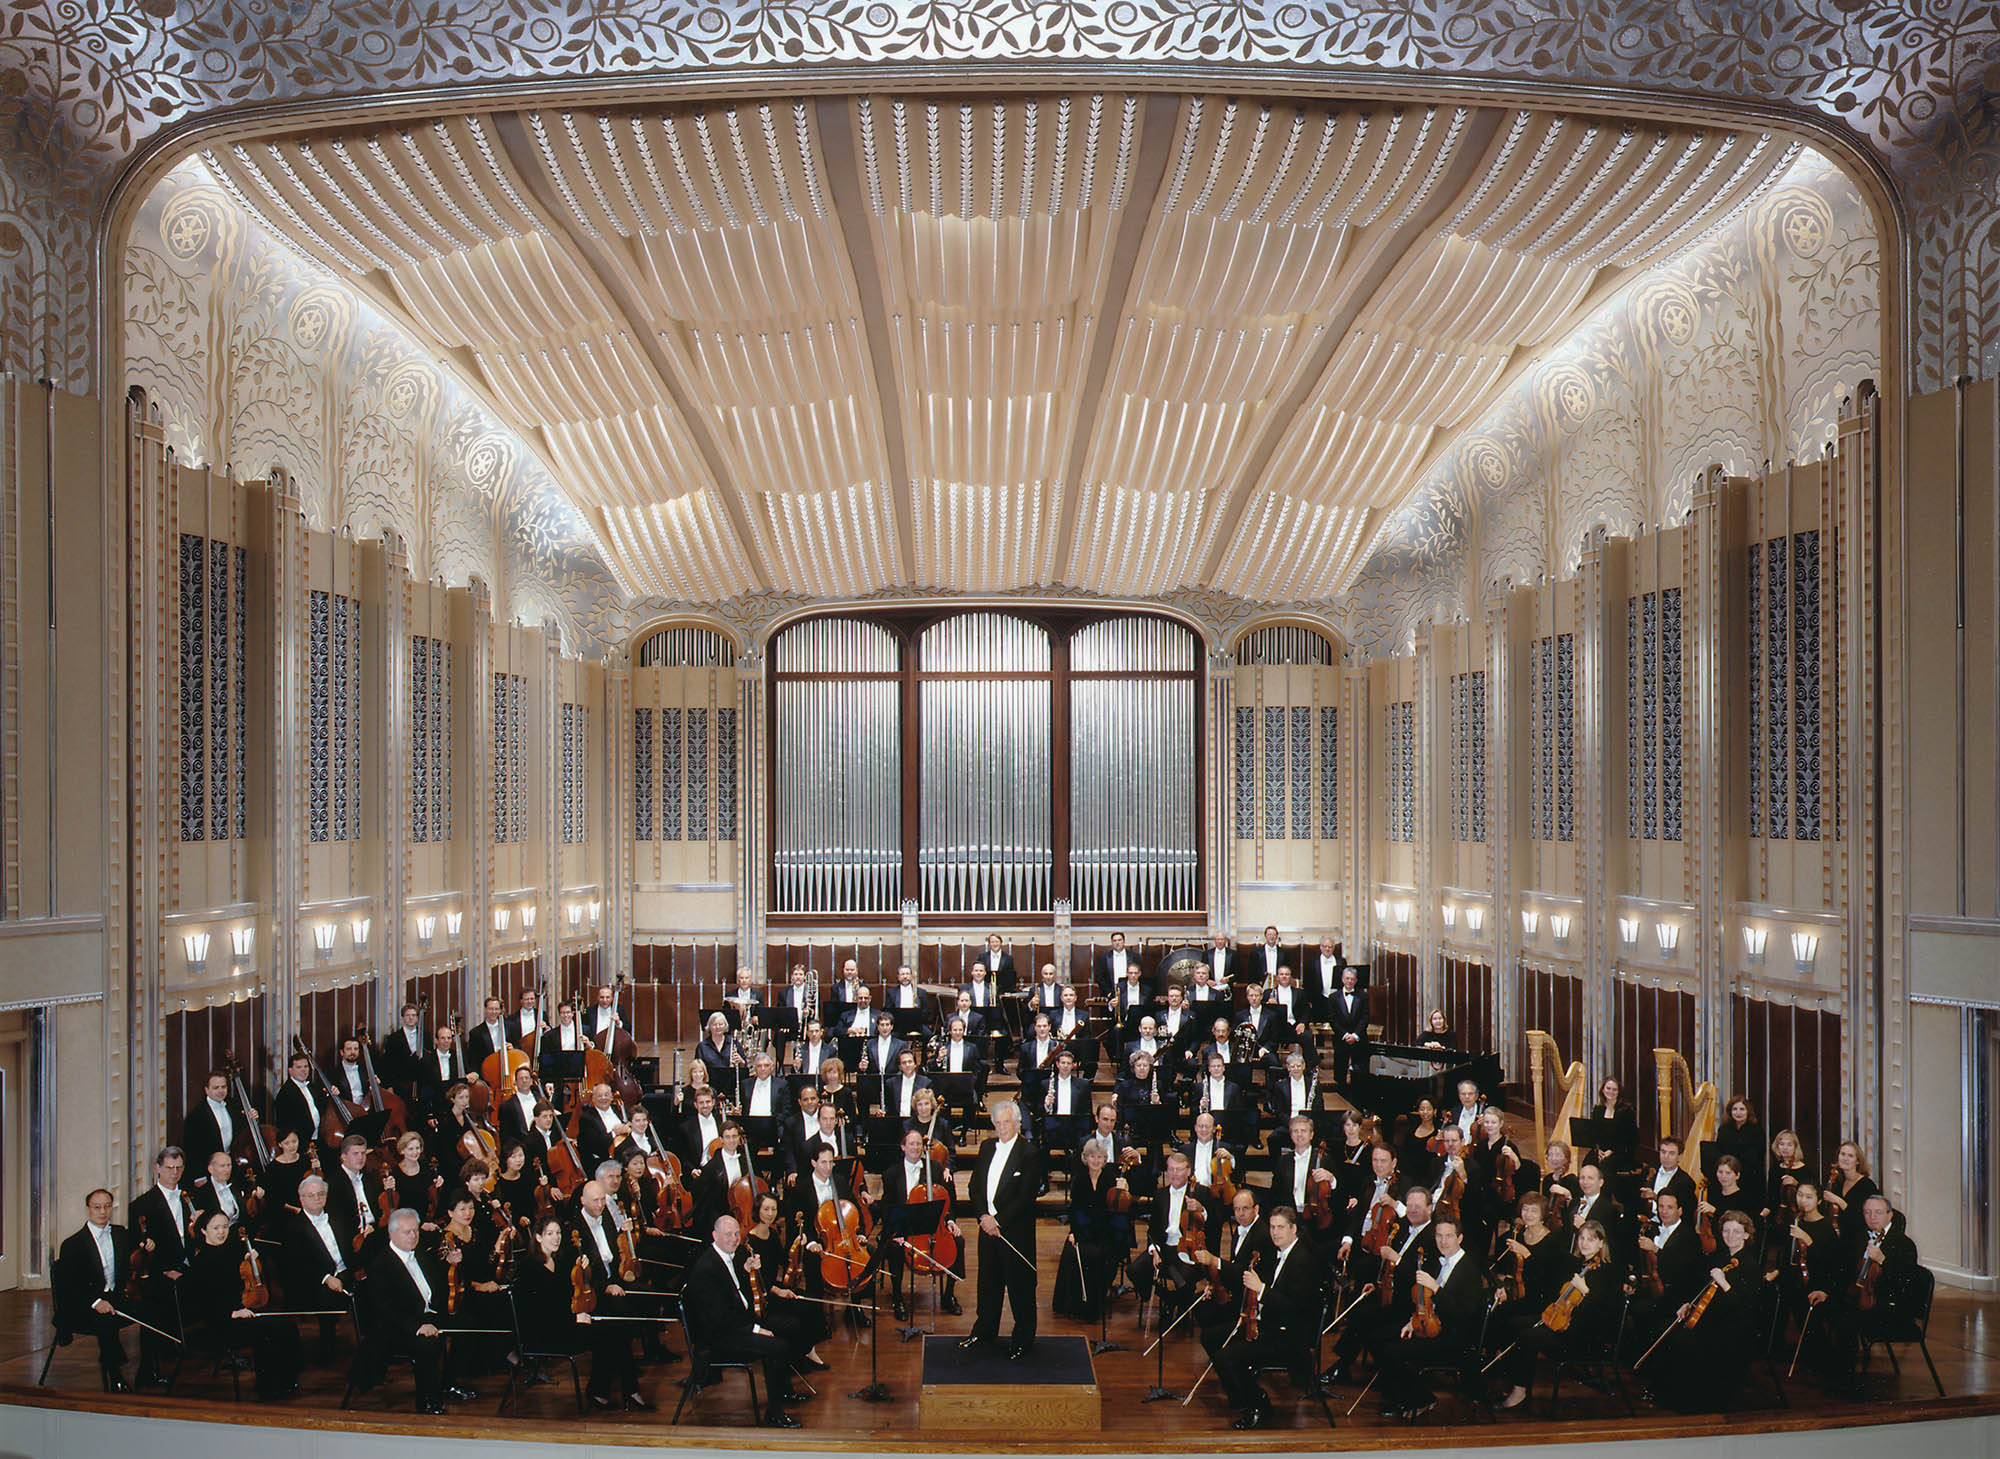 The Orchestra is seated on stage in Severance Hall, with von Dohnányi standing on the podium and looking towards the camera.